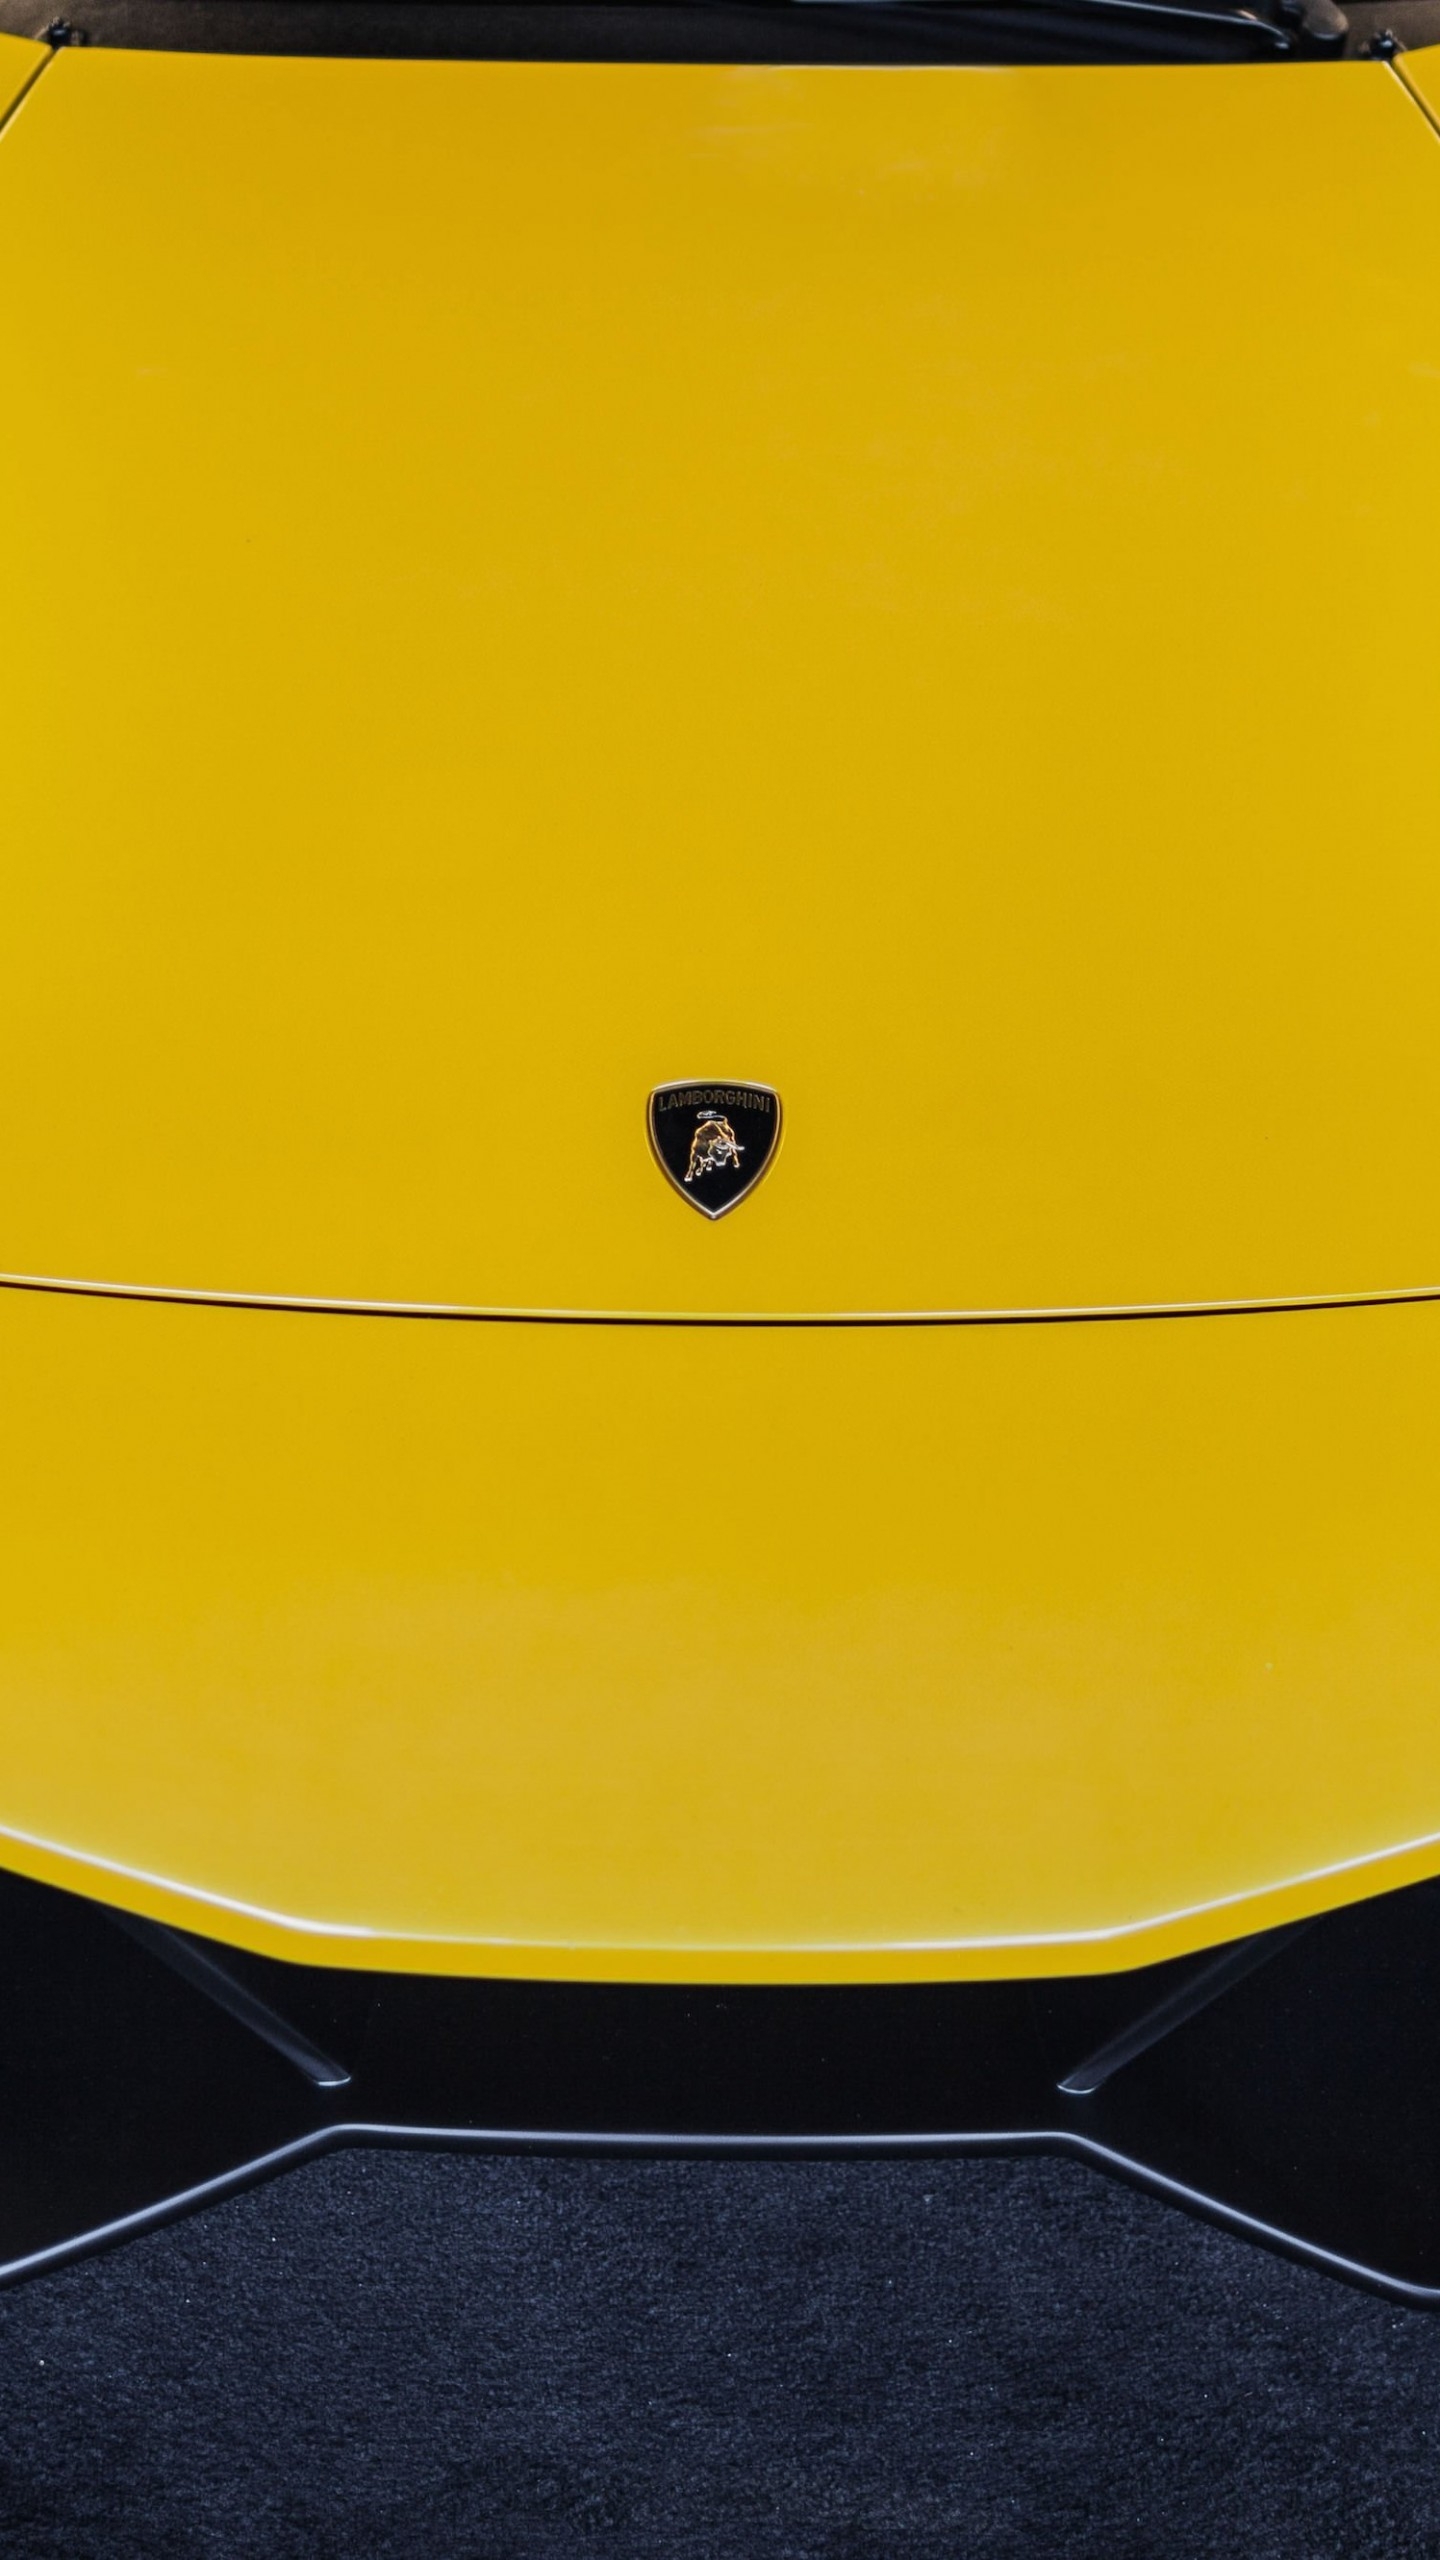 Lamborghini Murcielago LP670 Front Wallpaper for SAMSUNG Galaxy Note 4